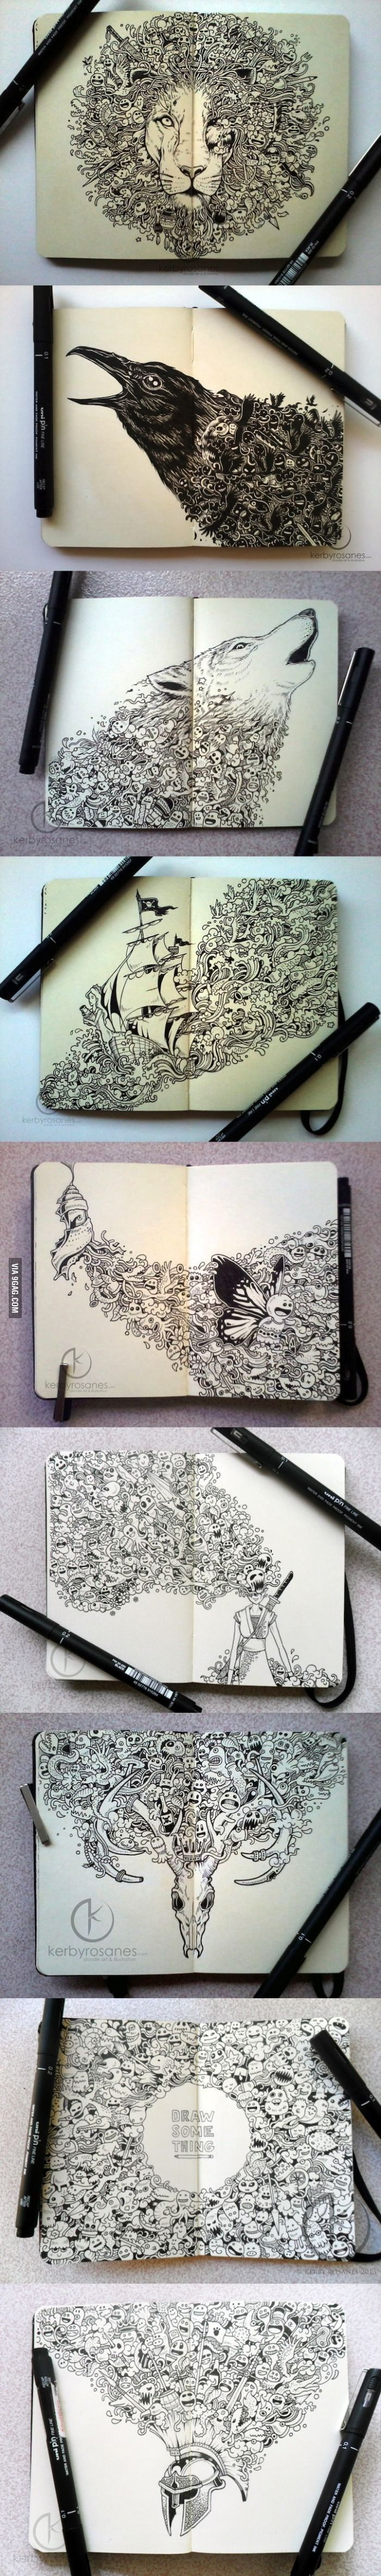 images about drawings on pinterest disney how to draw and